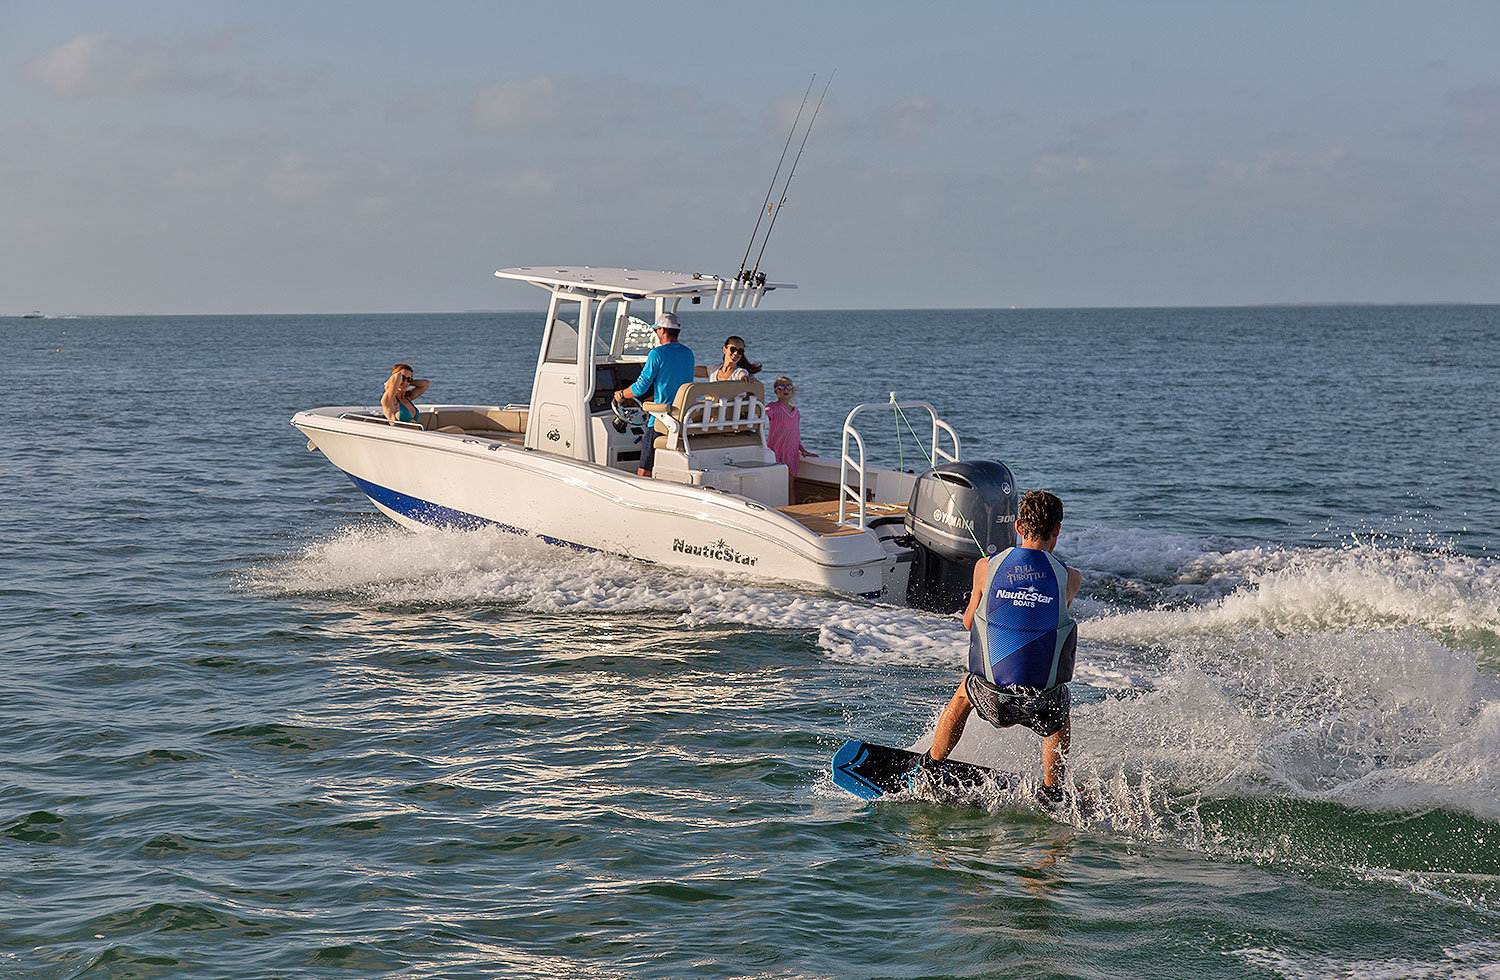 Man waterskiing while two women and a girl watch on a NauticStar 251 Hybrid